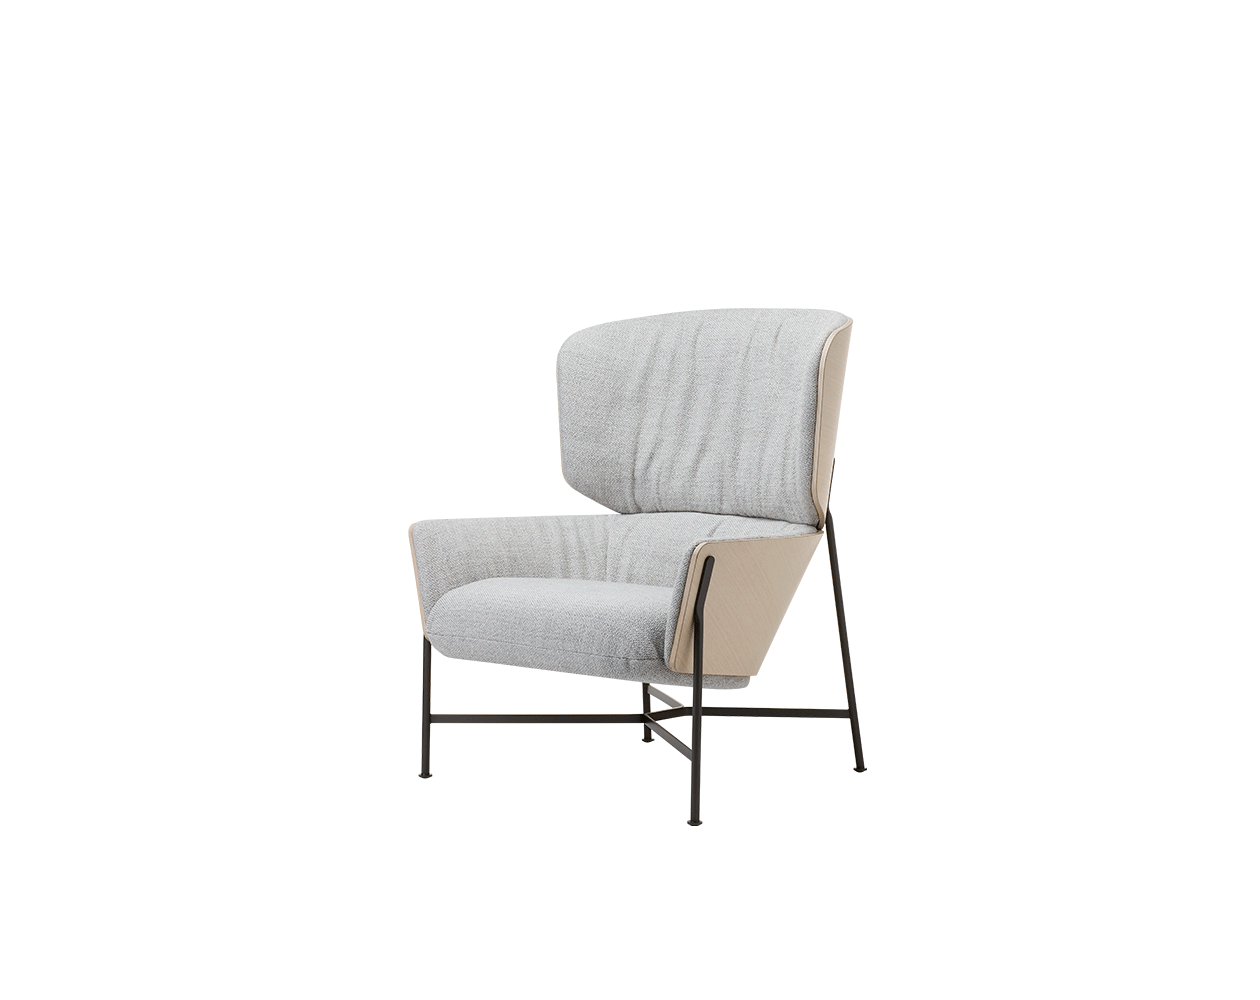 Designer High Chair Caristo High Back Armchair By Tim Rundle Sp01 Design